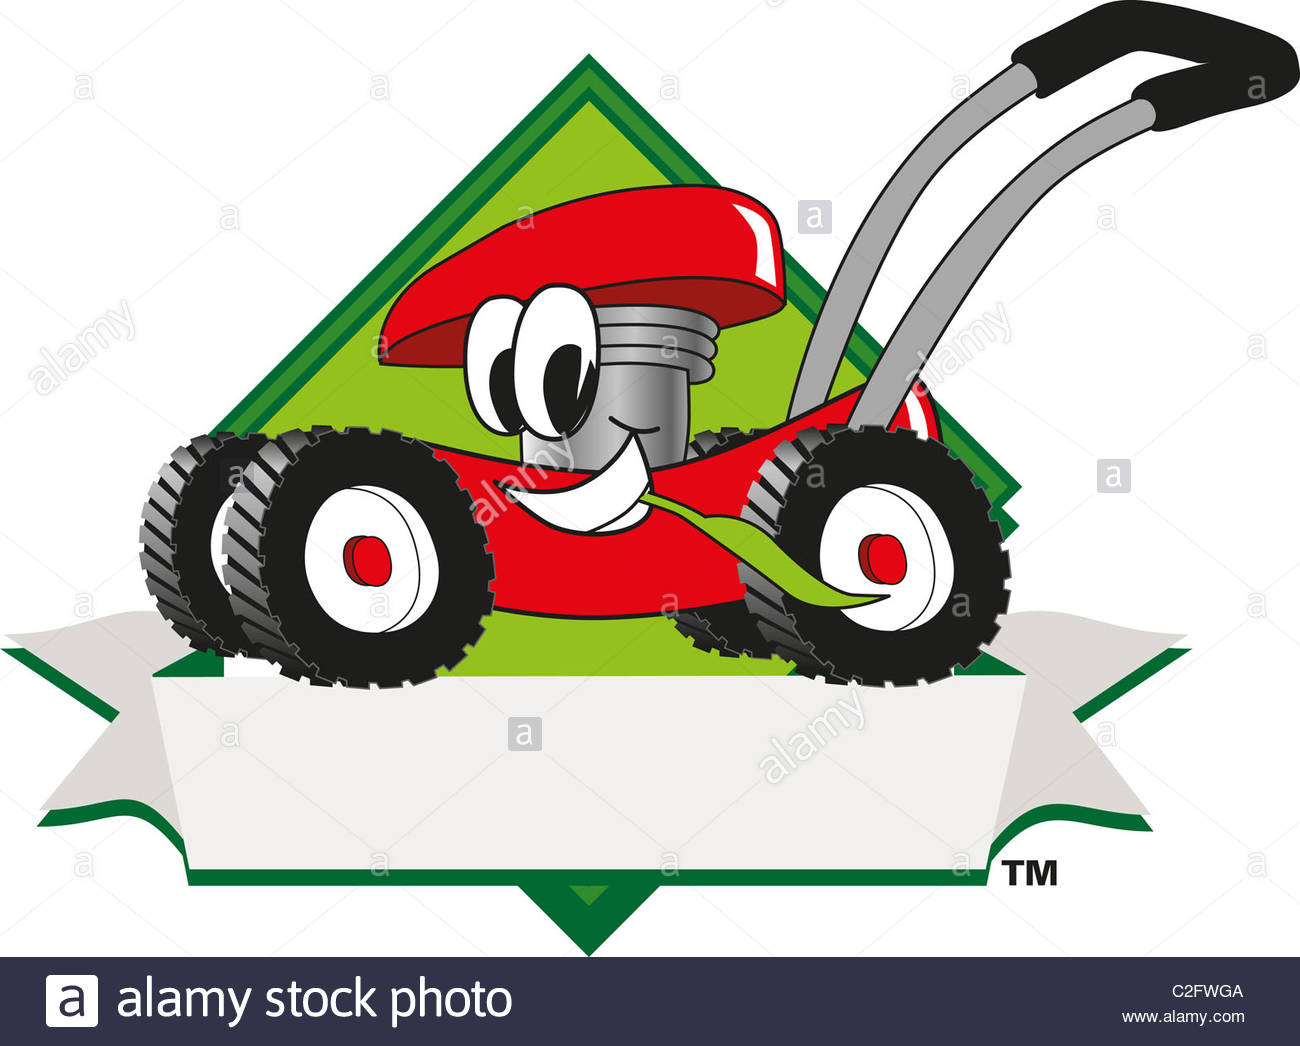 Mowing clipart lawn service, Mowing lawn service Transparent.